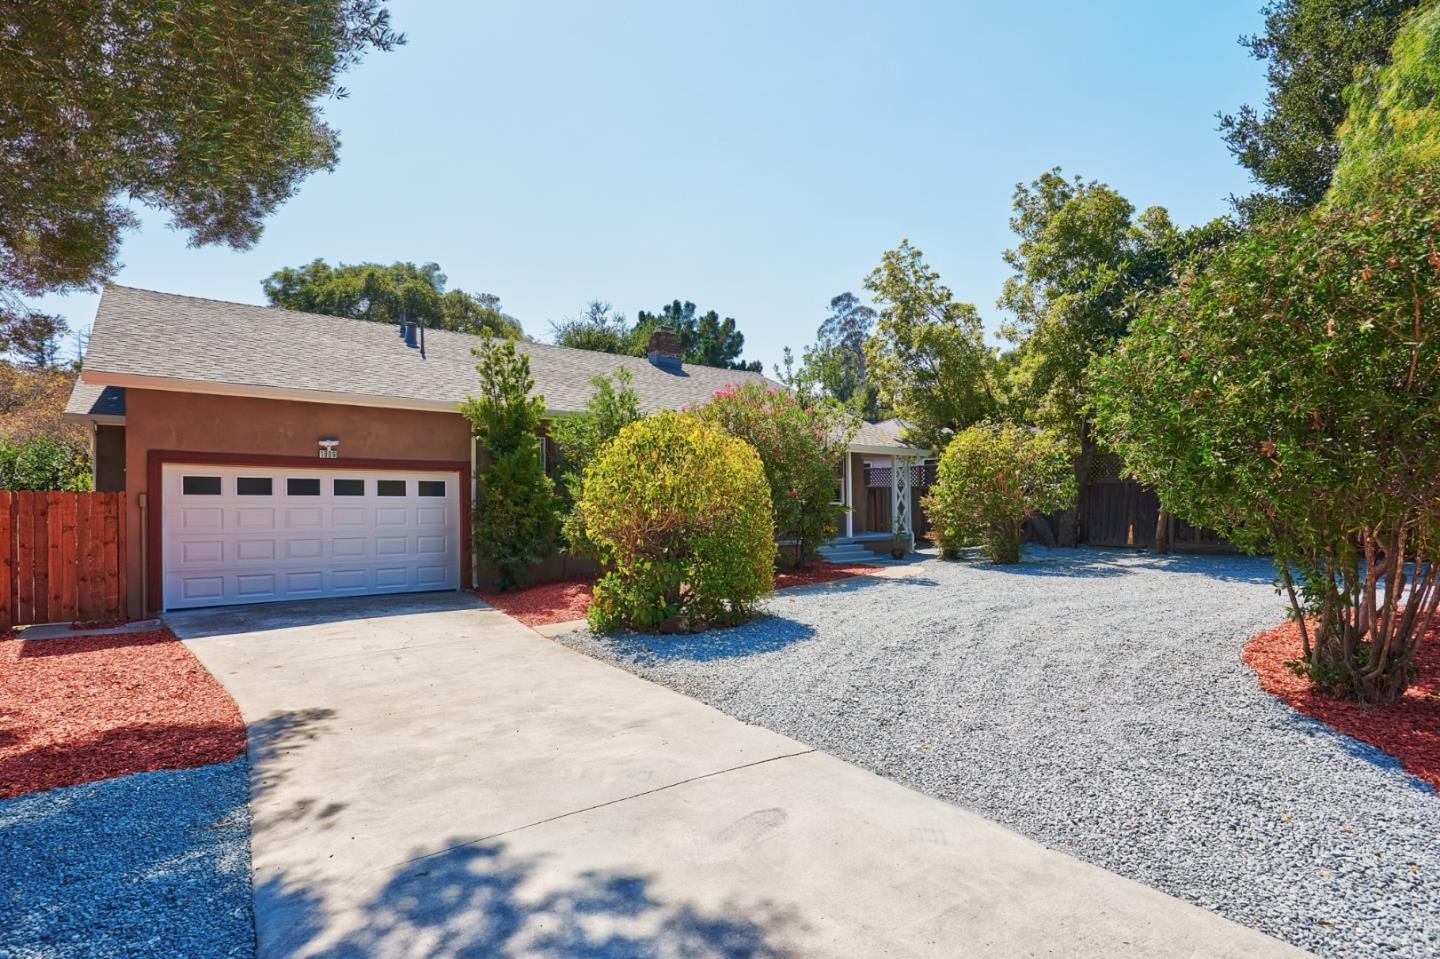 1809 Ralston Avenue Belmont, CA 94002 - MLS #: ML81722320